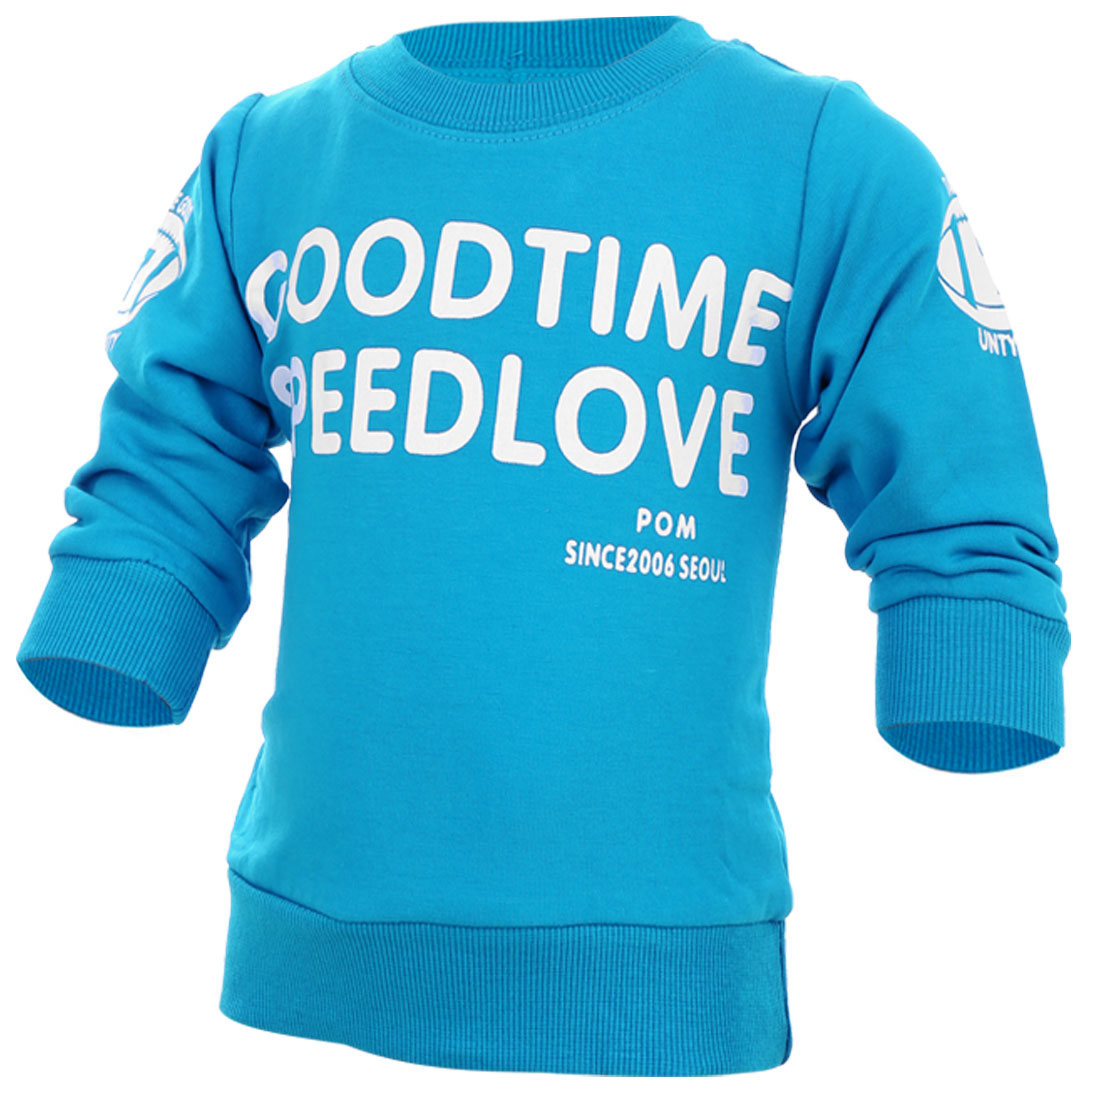 Children New Fashion Round Neck Long-Sleeved Blue Spring Top Shirt 12 Month